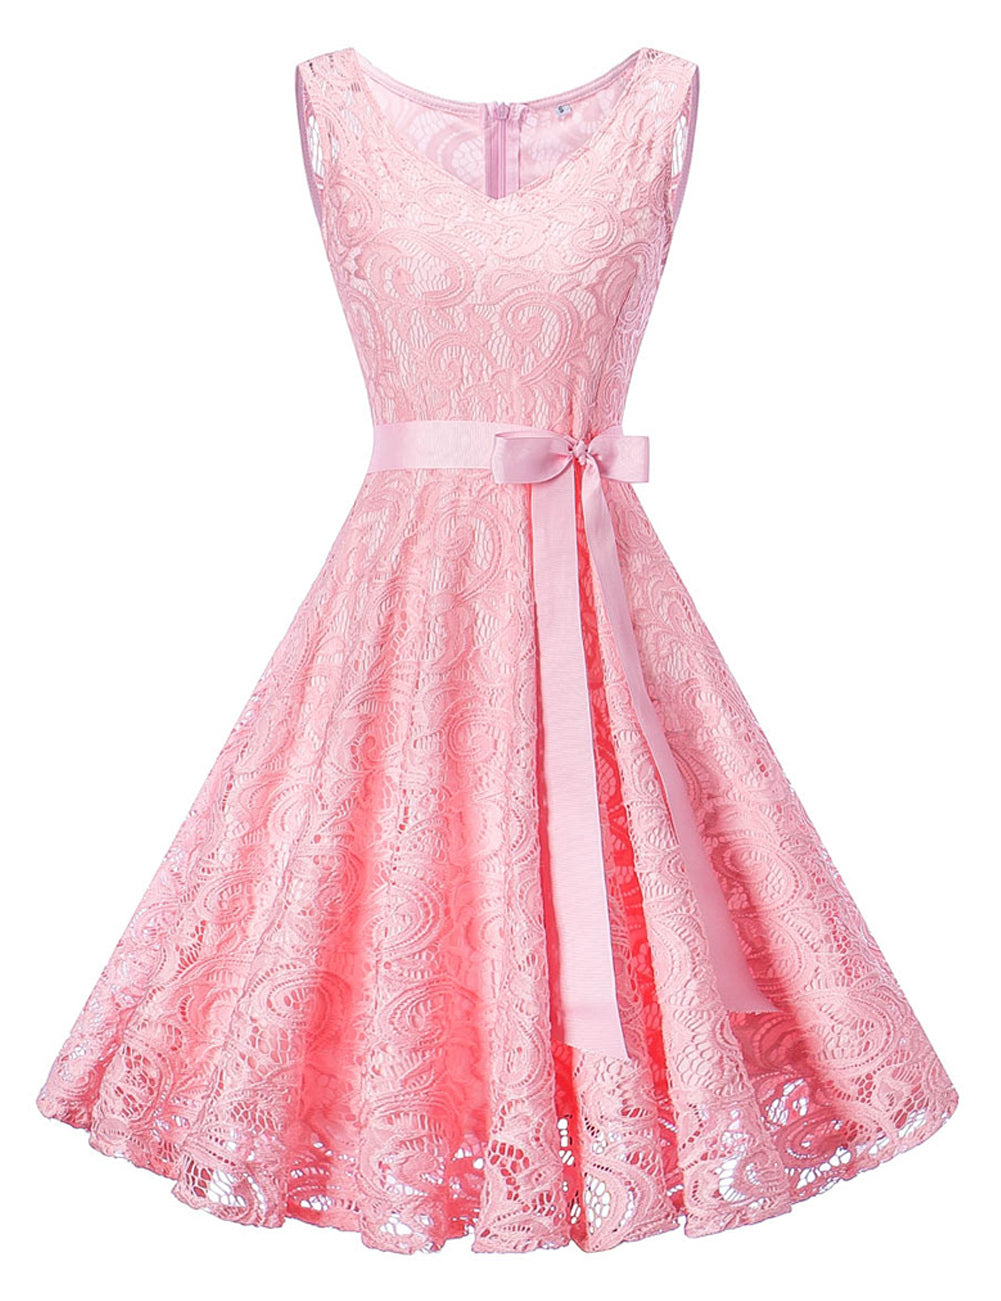 Pink Sleeveless Large Skater Dress Waist Band Women's Fashion  - Zaida Fashions